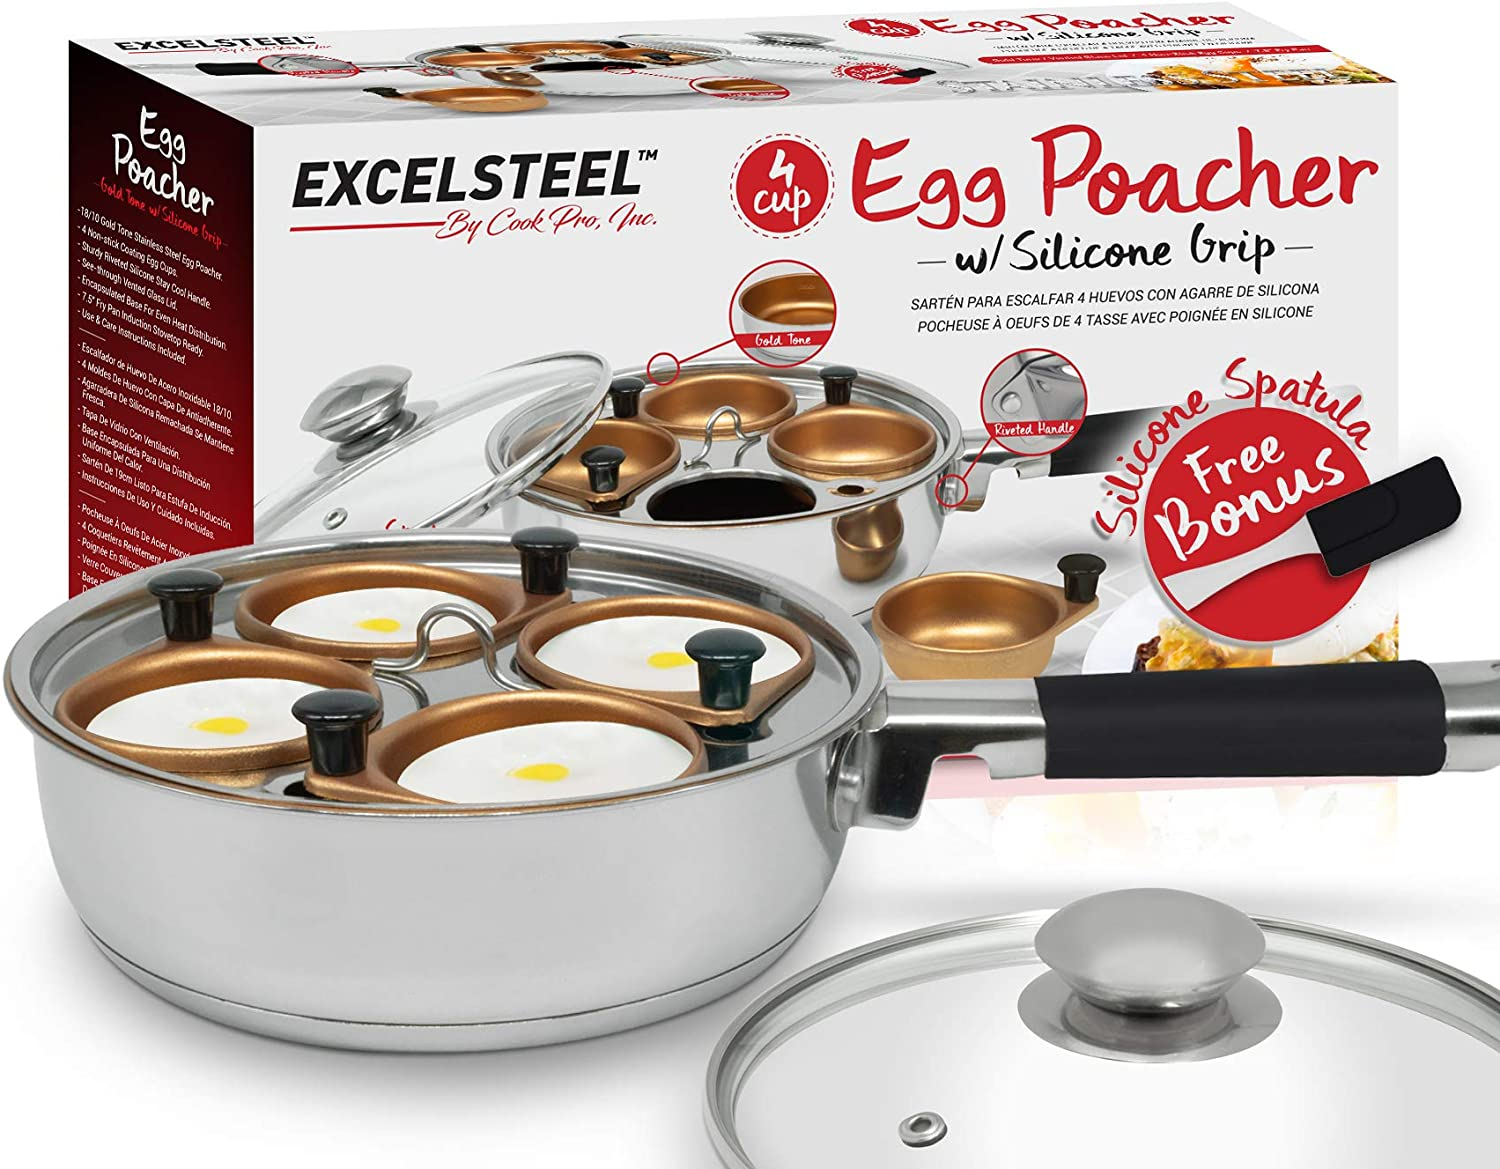 ExcelSteel Non Stick Easy Use Rust Resistant Home Kitchen Breakfast Brunch Induction Cooktop Egg Poacher, 4 Cup, Gold Tone